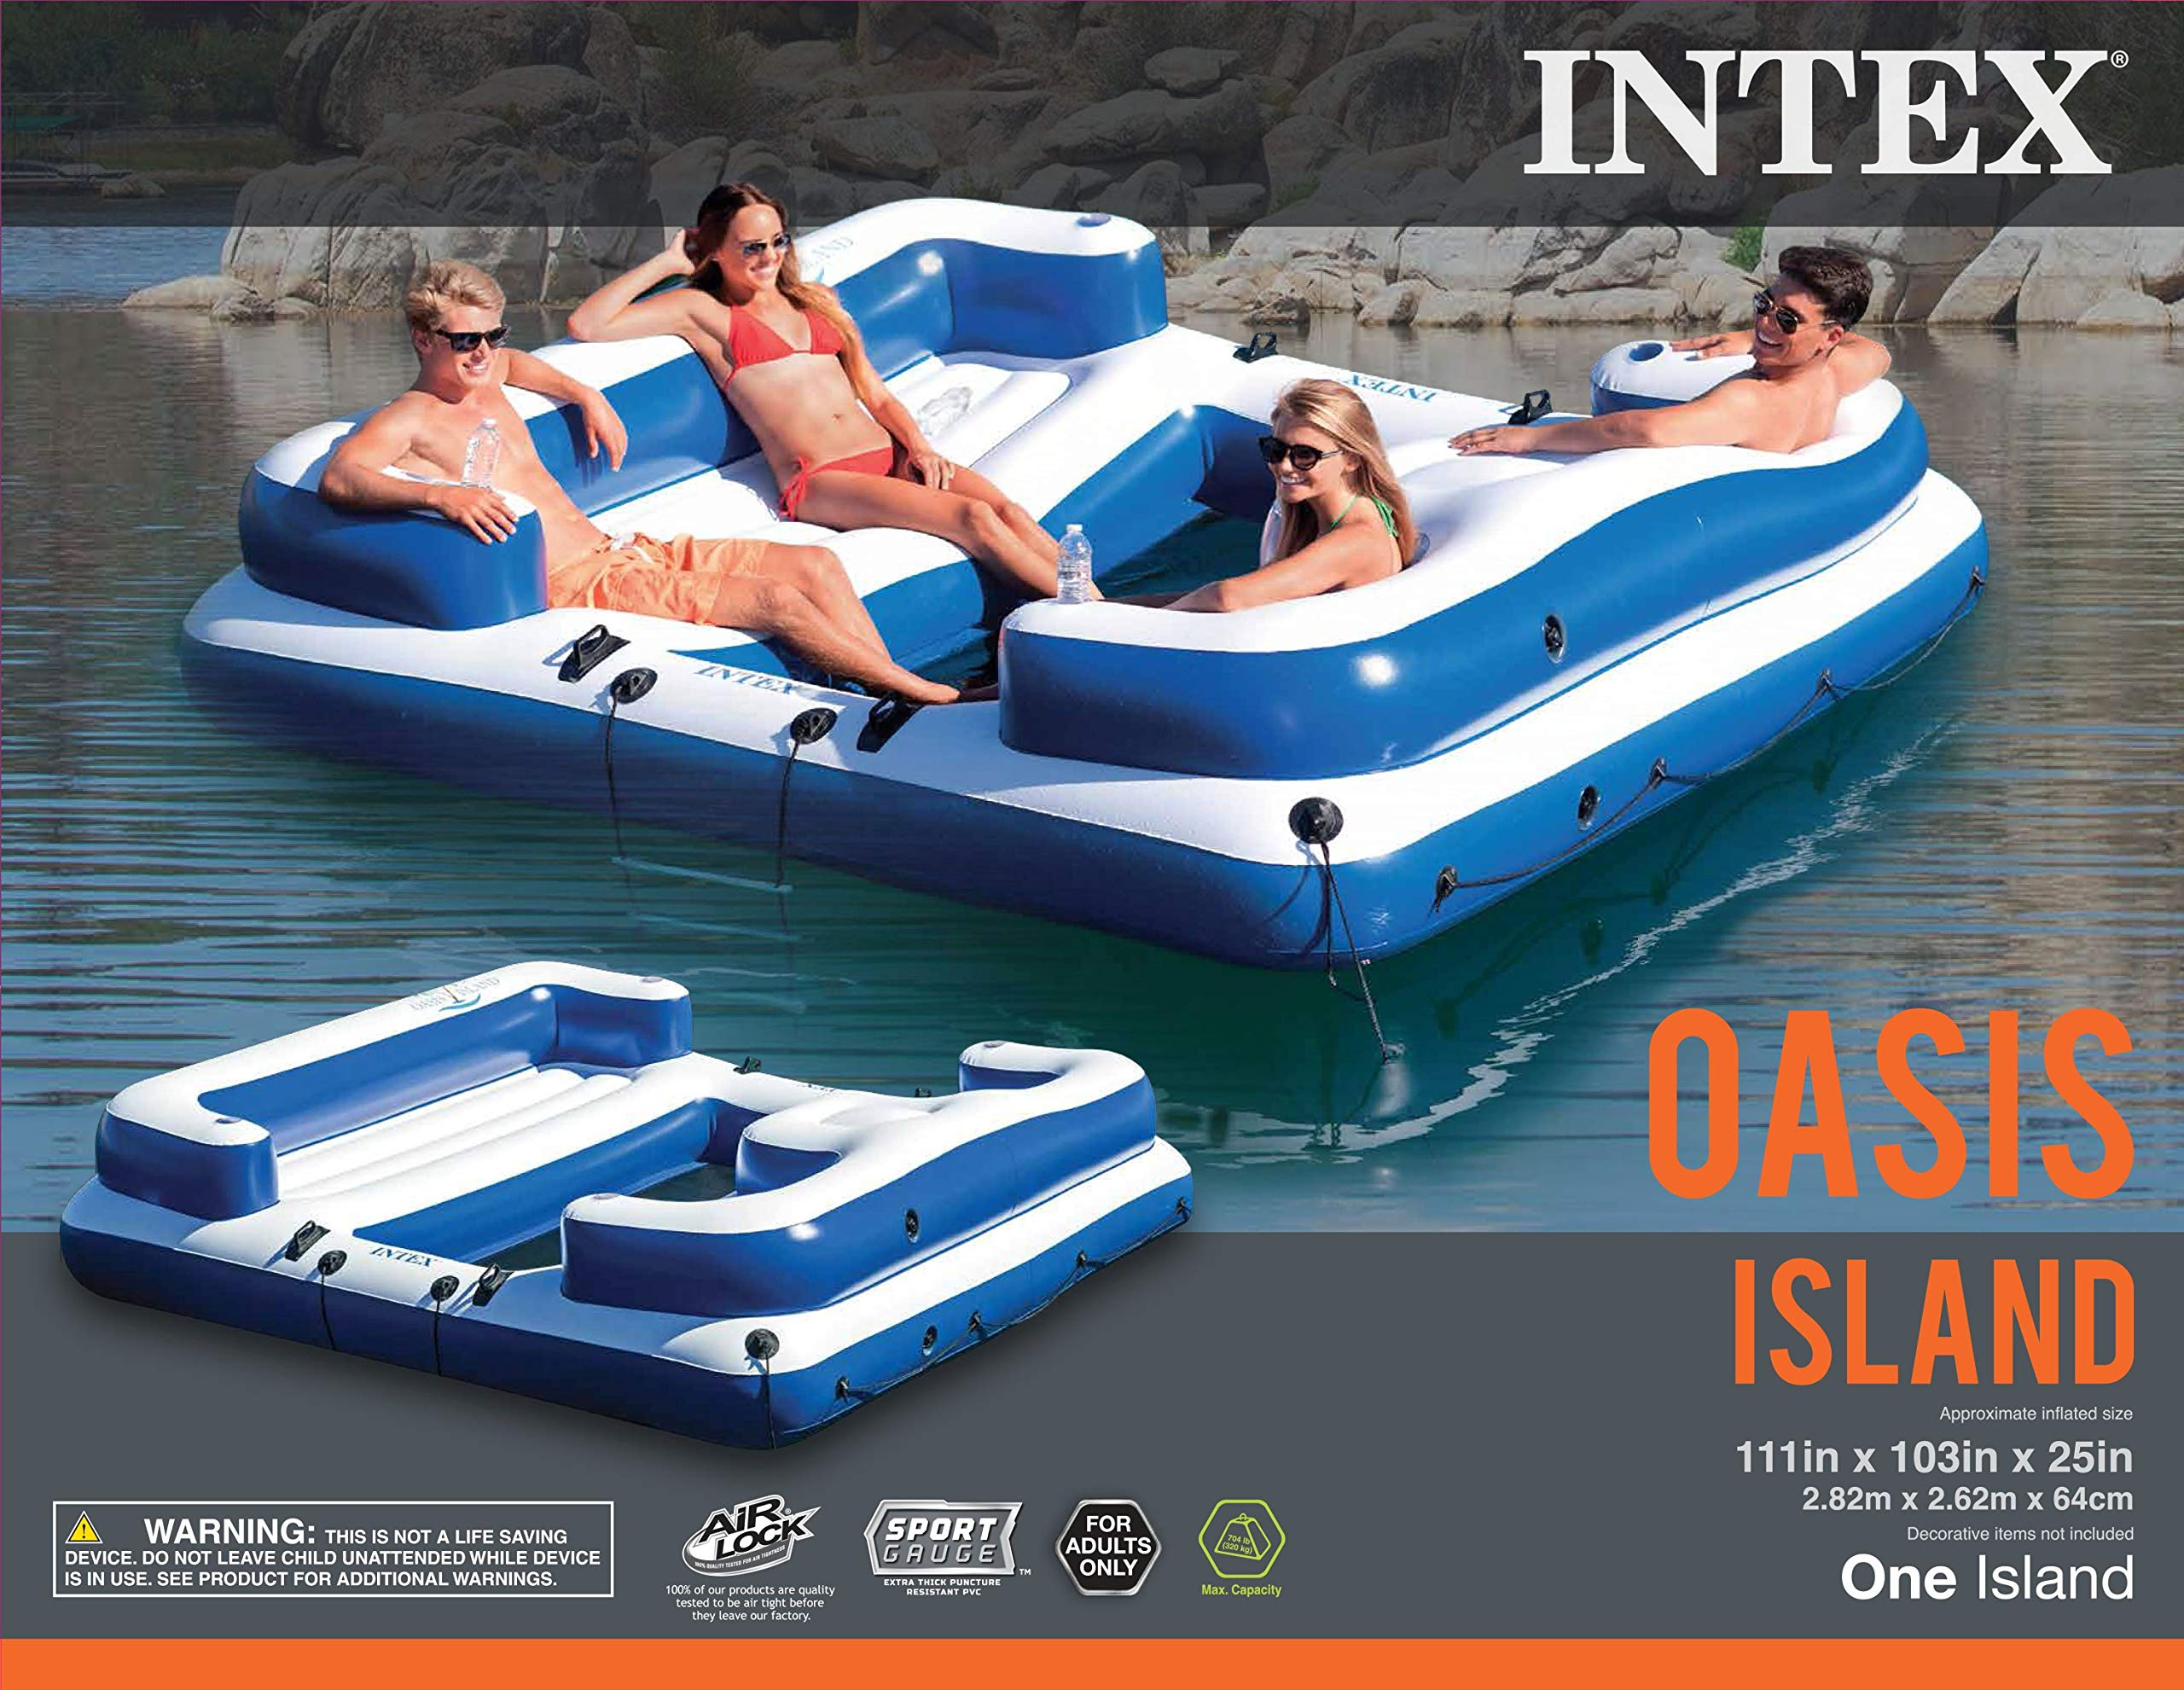 Intex Oasis Island Inflatable Giant 5 Person Lake Floating Lounge Raft (2 Pack) by Intex (Image #8)